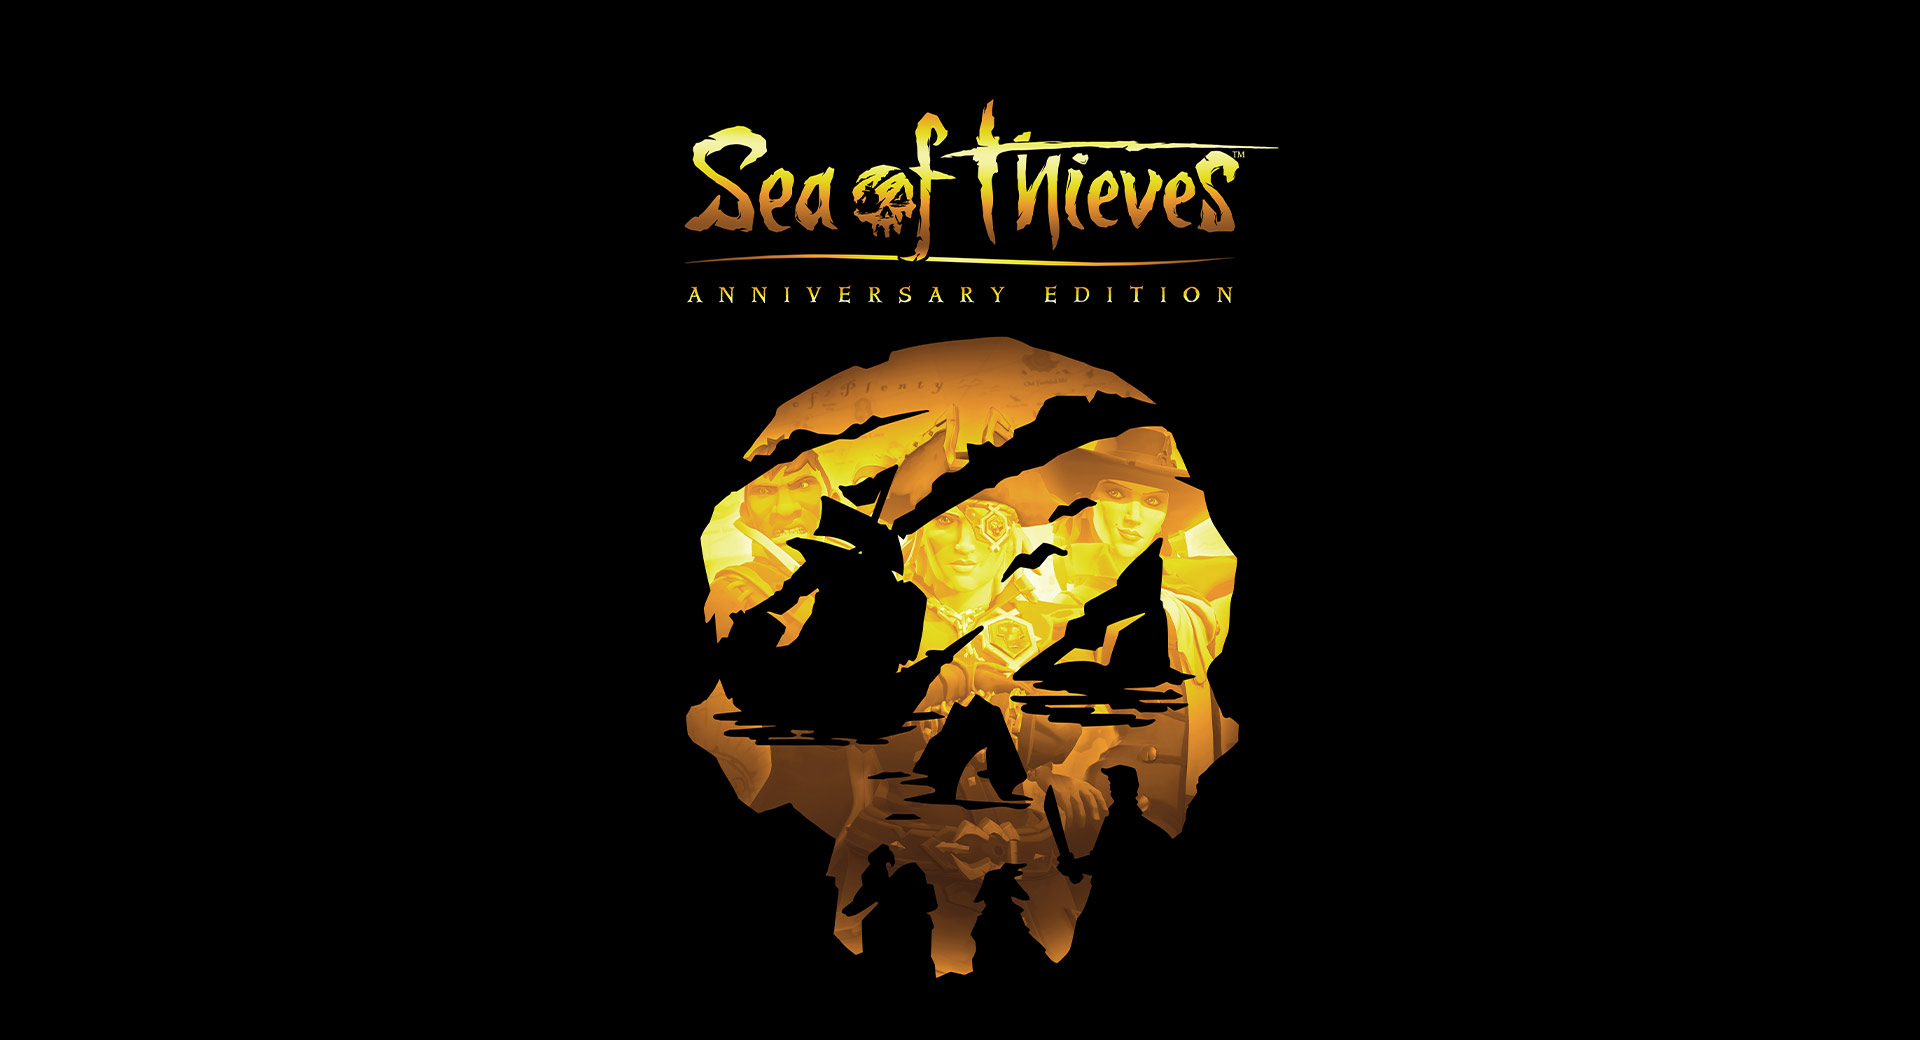 Sea of Thieves Anniversary logo on black background with skull cutout